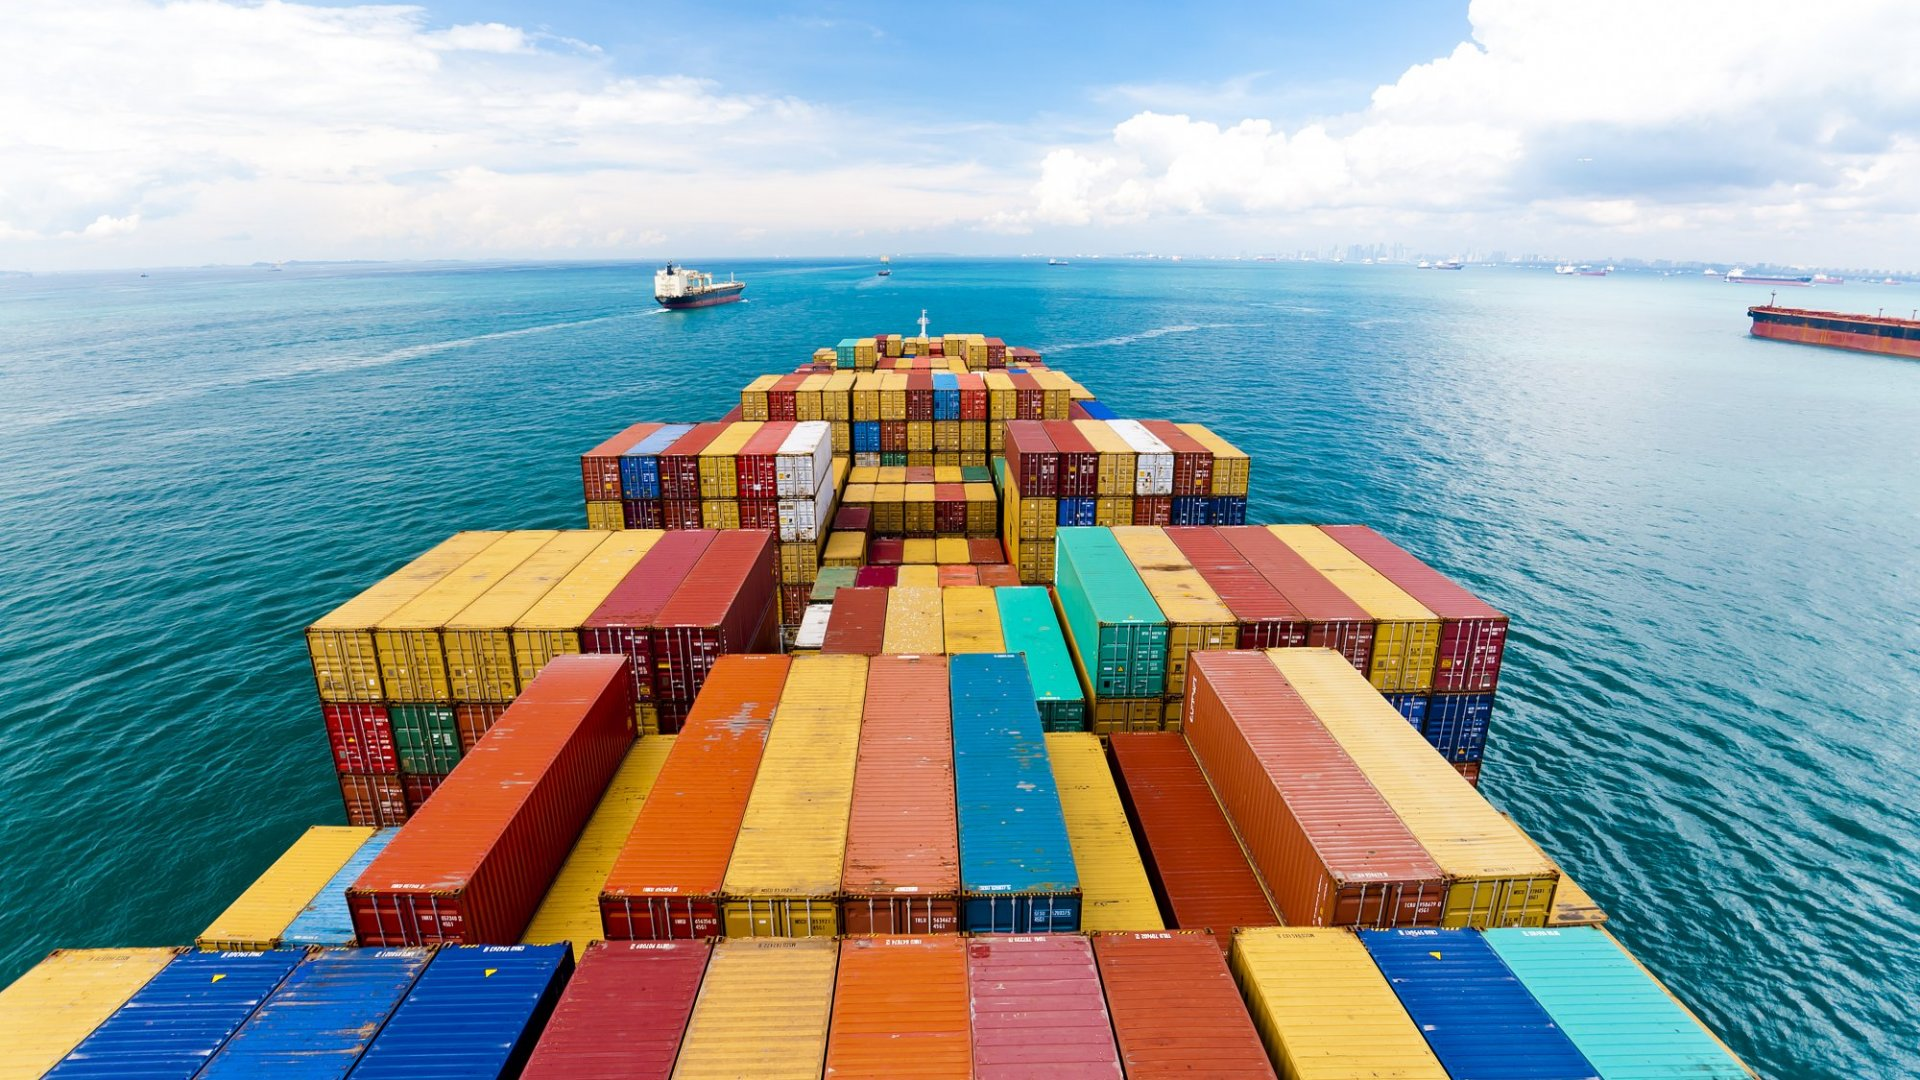 Sourcing overseas might sink your business if you don't know the rules.